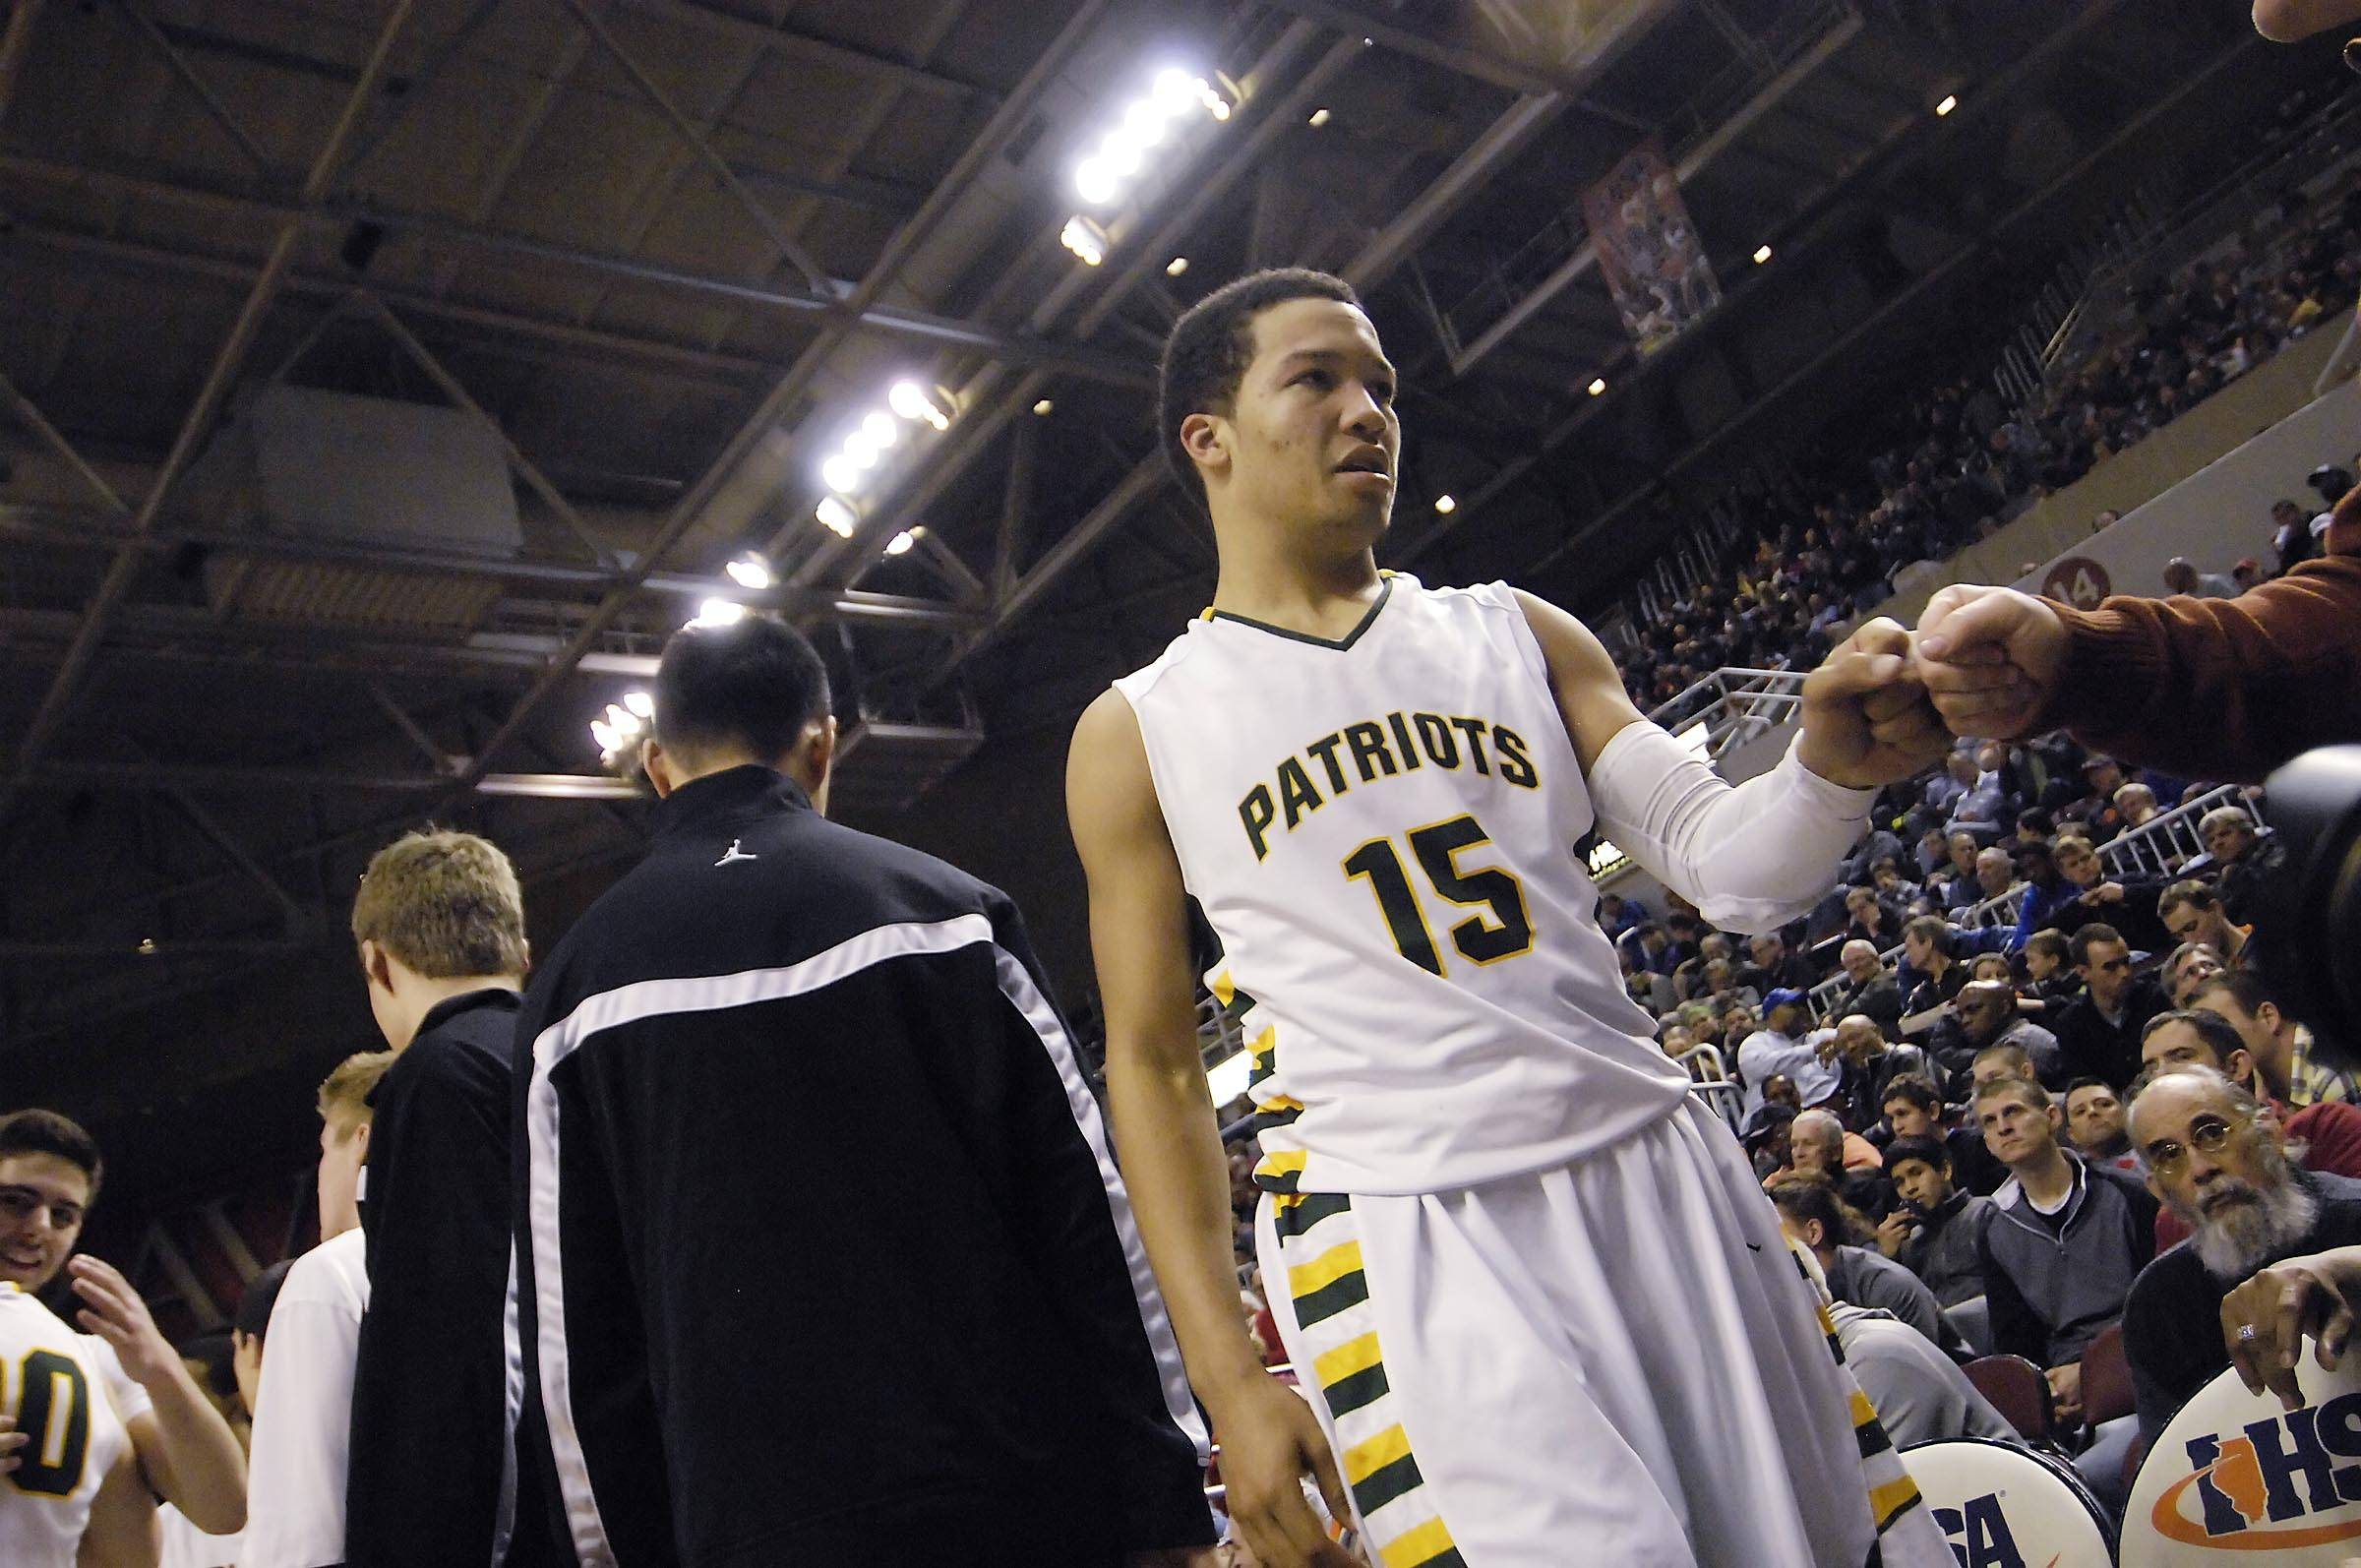 Stevenson's Jalen Brunson comes off the court in the final seconds of the Patriots' win over Edwardsville in the Class 4A state third place game at Carver Arena in Peoria Saturday.